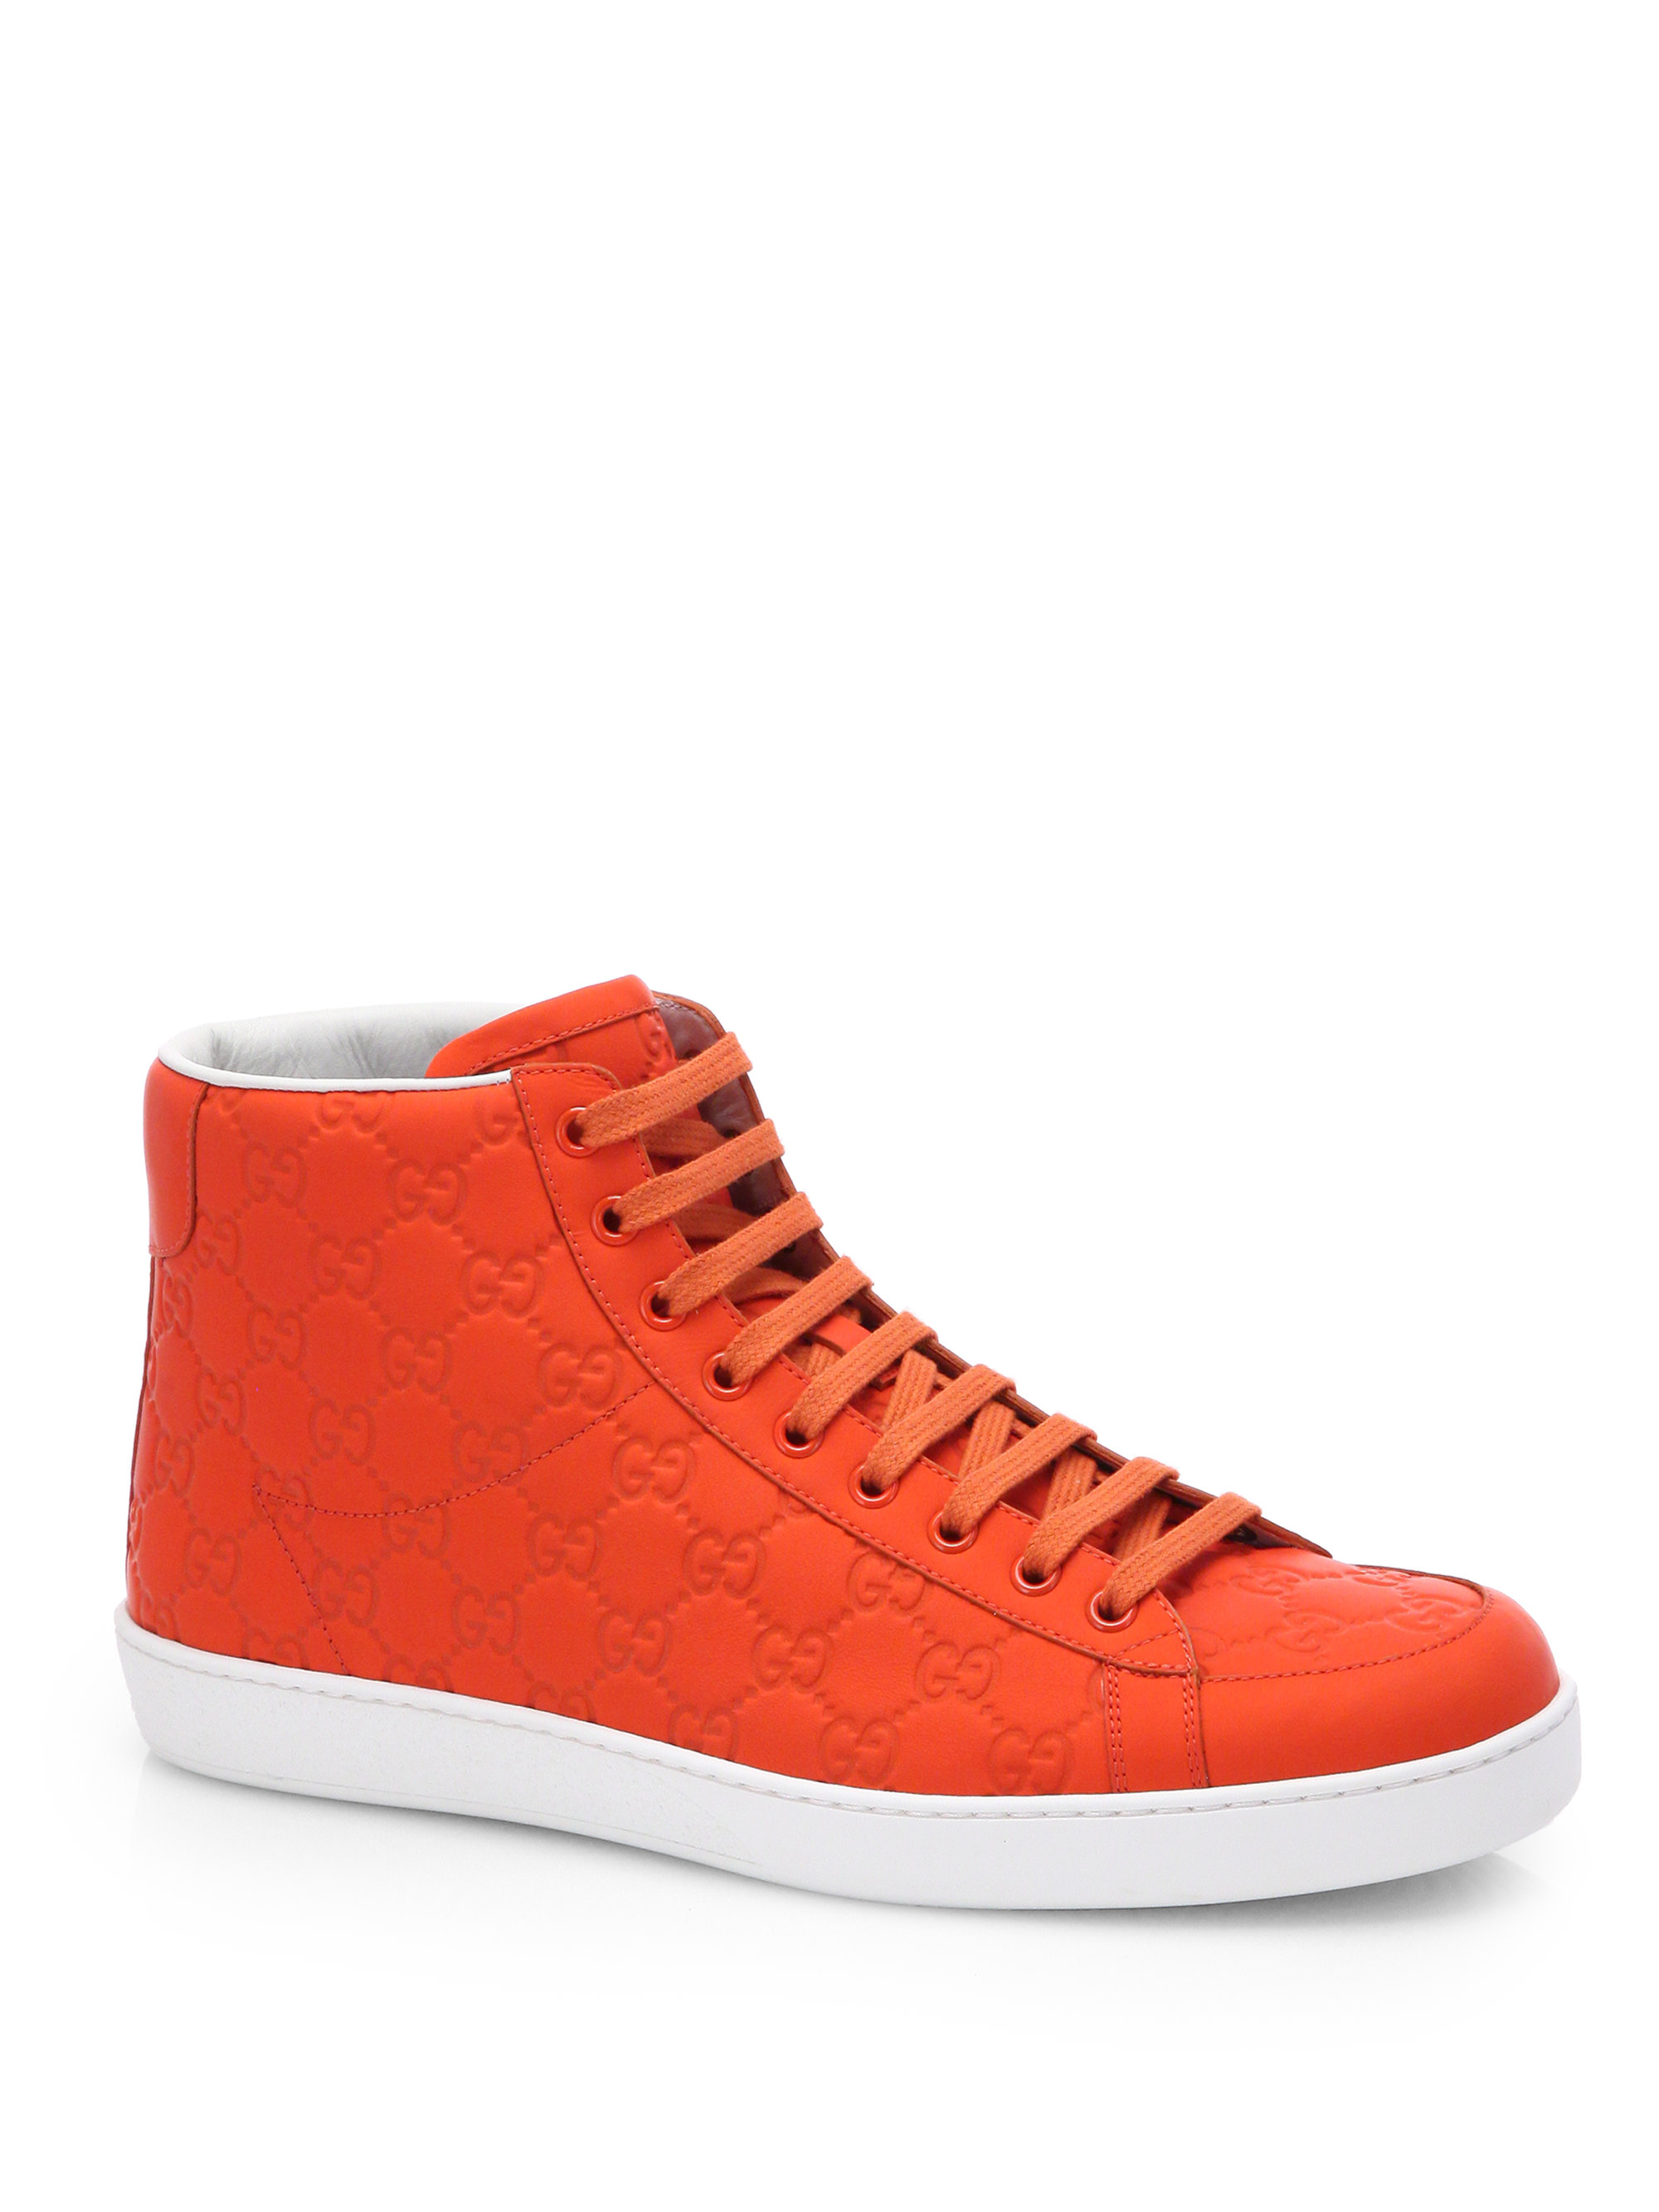 Lyst Gucci Rubberized Leather Gg Hightop Sneakers In